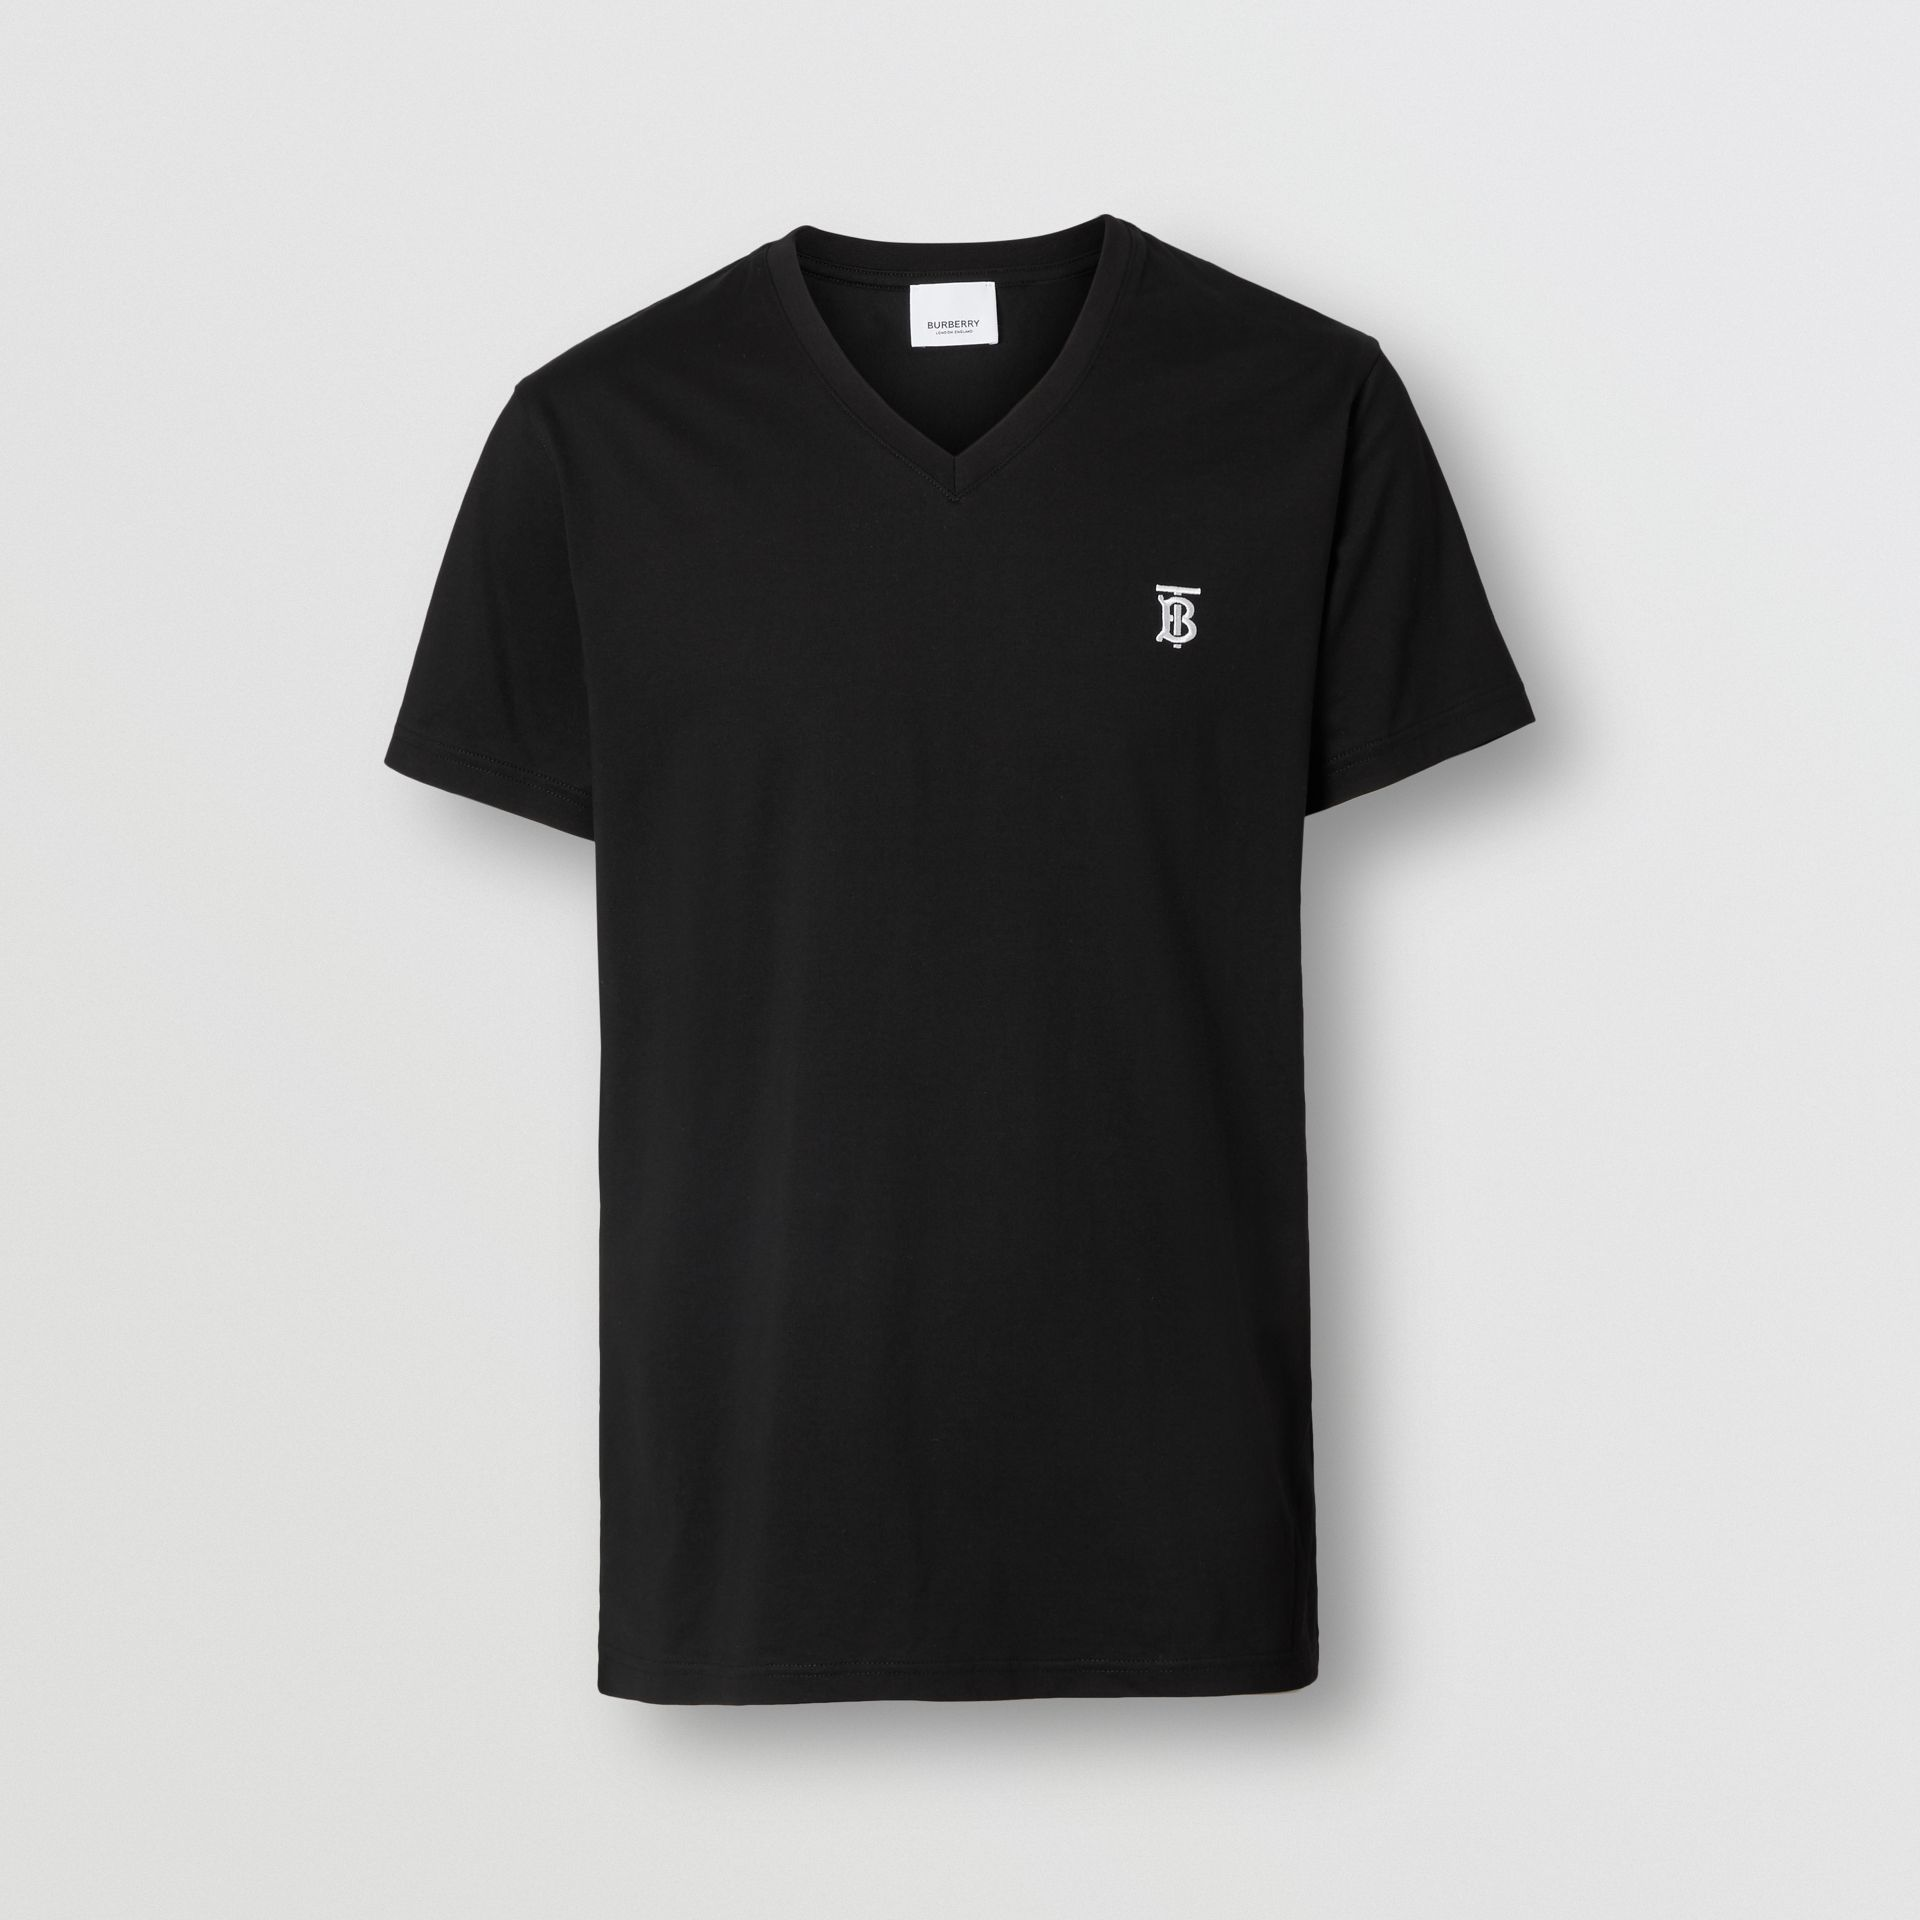 Monogram Motif Cotton V-neck T-shirt in Black - Men | Burberry United Kingdom - gallery image 3